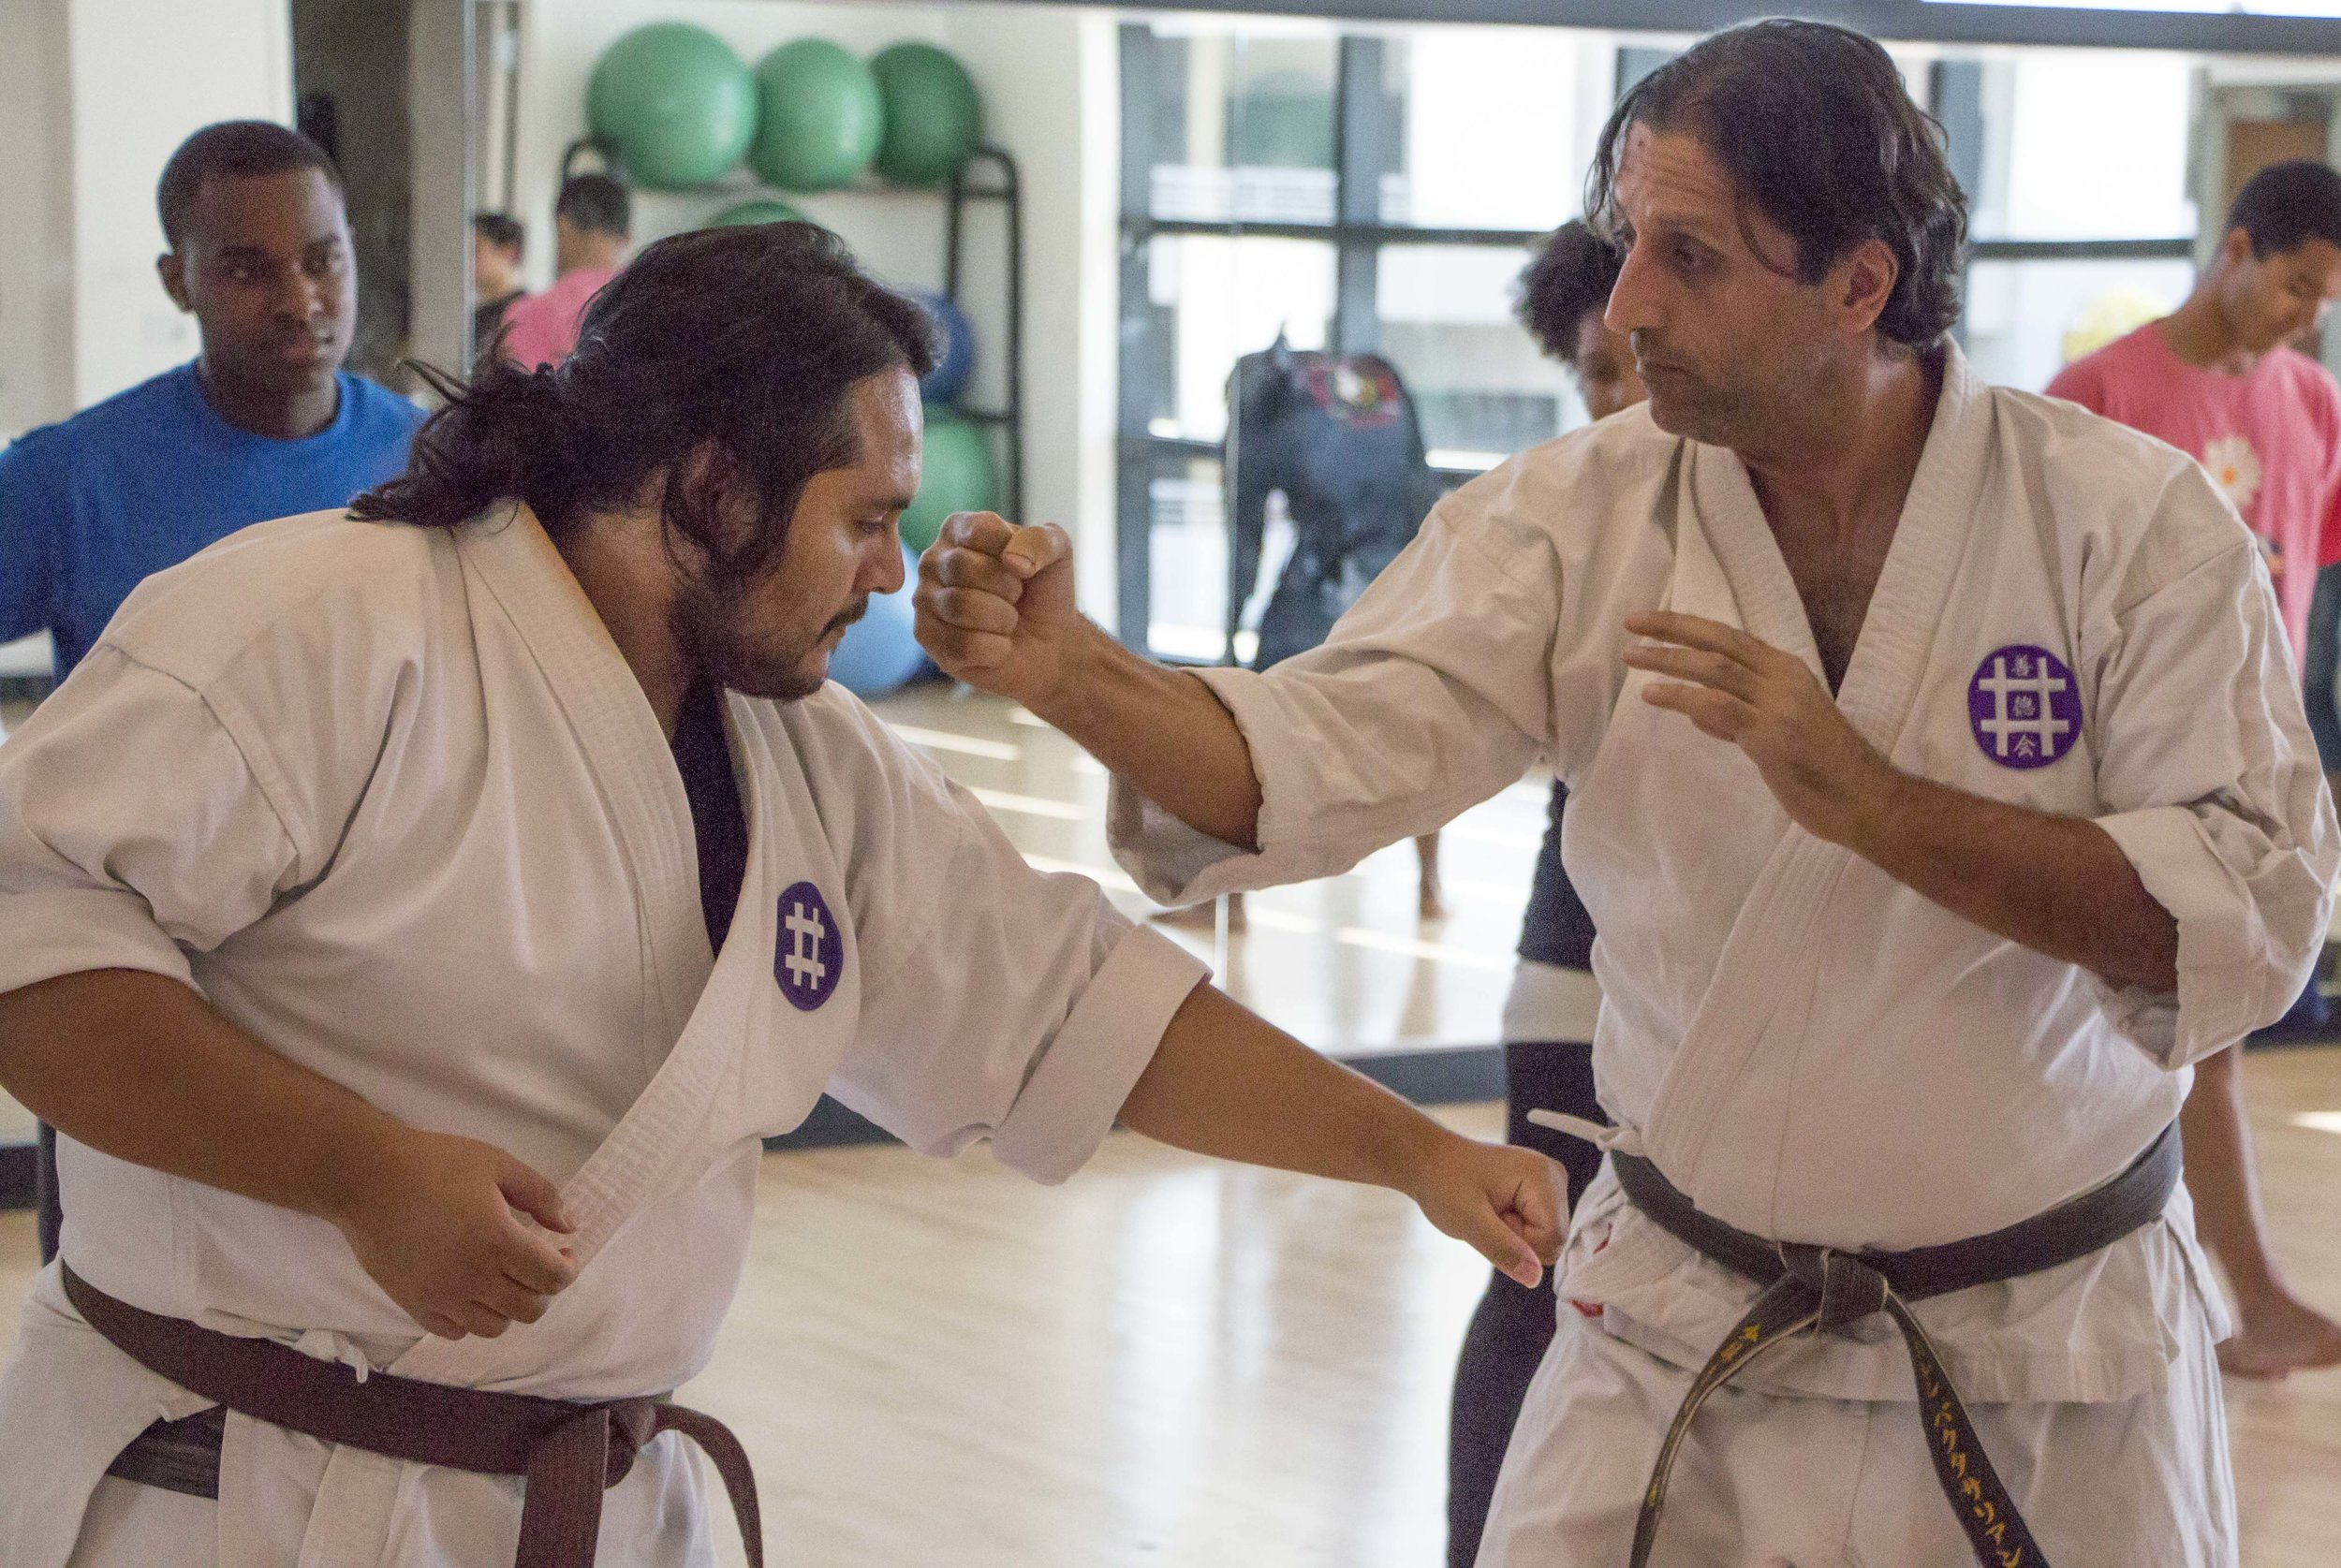 Santa Monica CollegeProfessor Baghdasarian and student Henry de Leon show the class proper technique as other students look on, on Thursday, April 18, 2018 in Santa Monica, California. From 3:45 to 5:05, the second floor room of the Core Performance Center on the main campus of Santa Monica College becomes a dojo where students learn the Shorinji-Ryu style of Okinawa Karate. (Wilson Gomez/Corsair Photo)